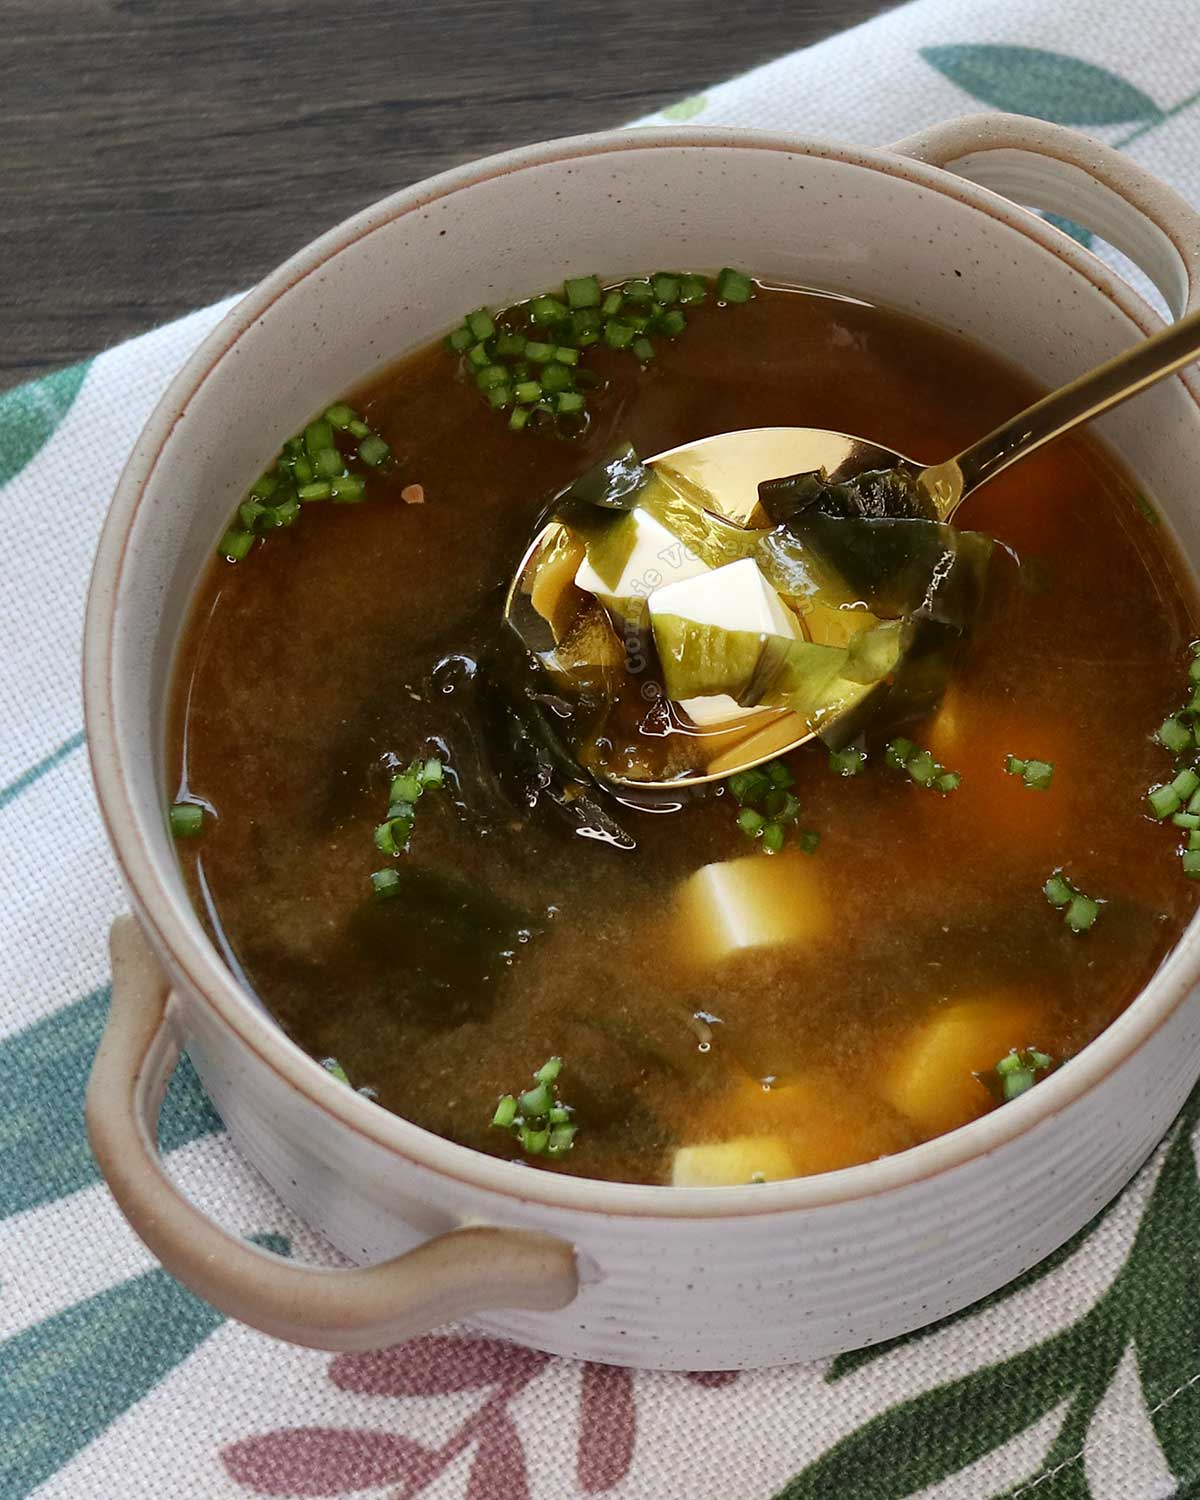 A bowl of miso soup with wakame and soft tofu